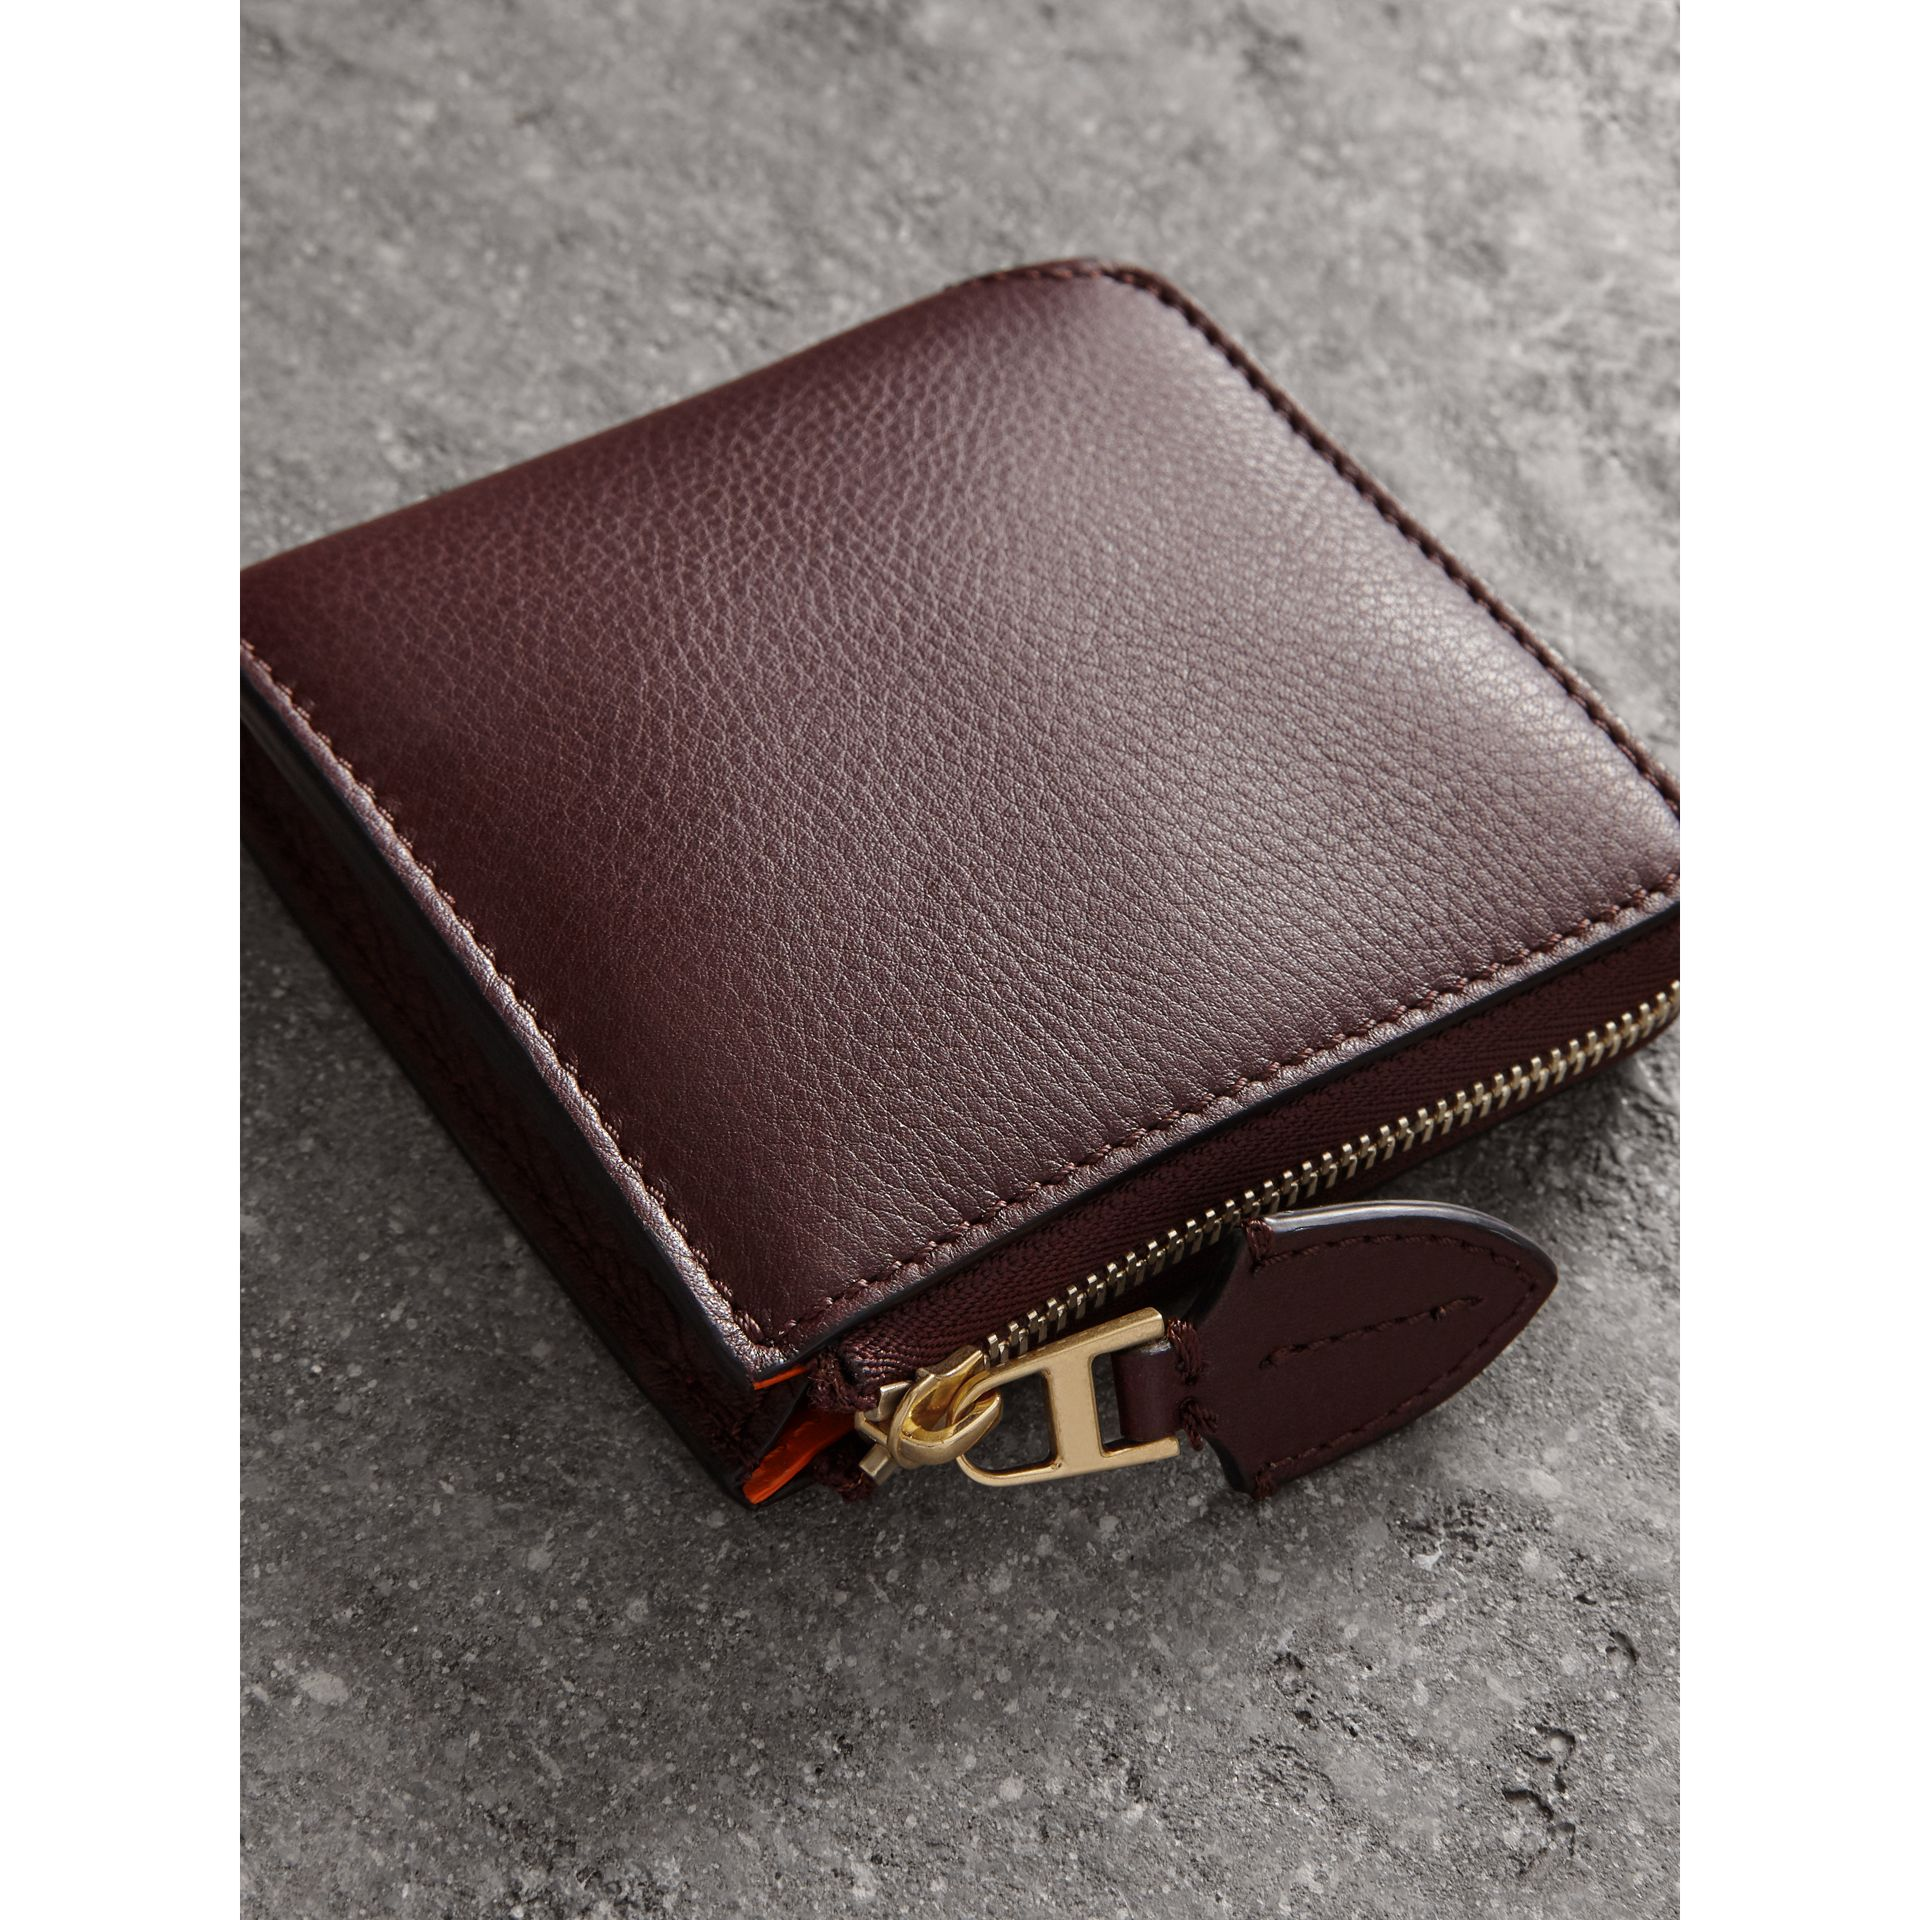 Grainy Leather Square Ziparound Wallet in Deep Claret - Women | Burberry United Kingdom - gallery image 2